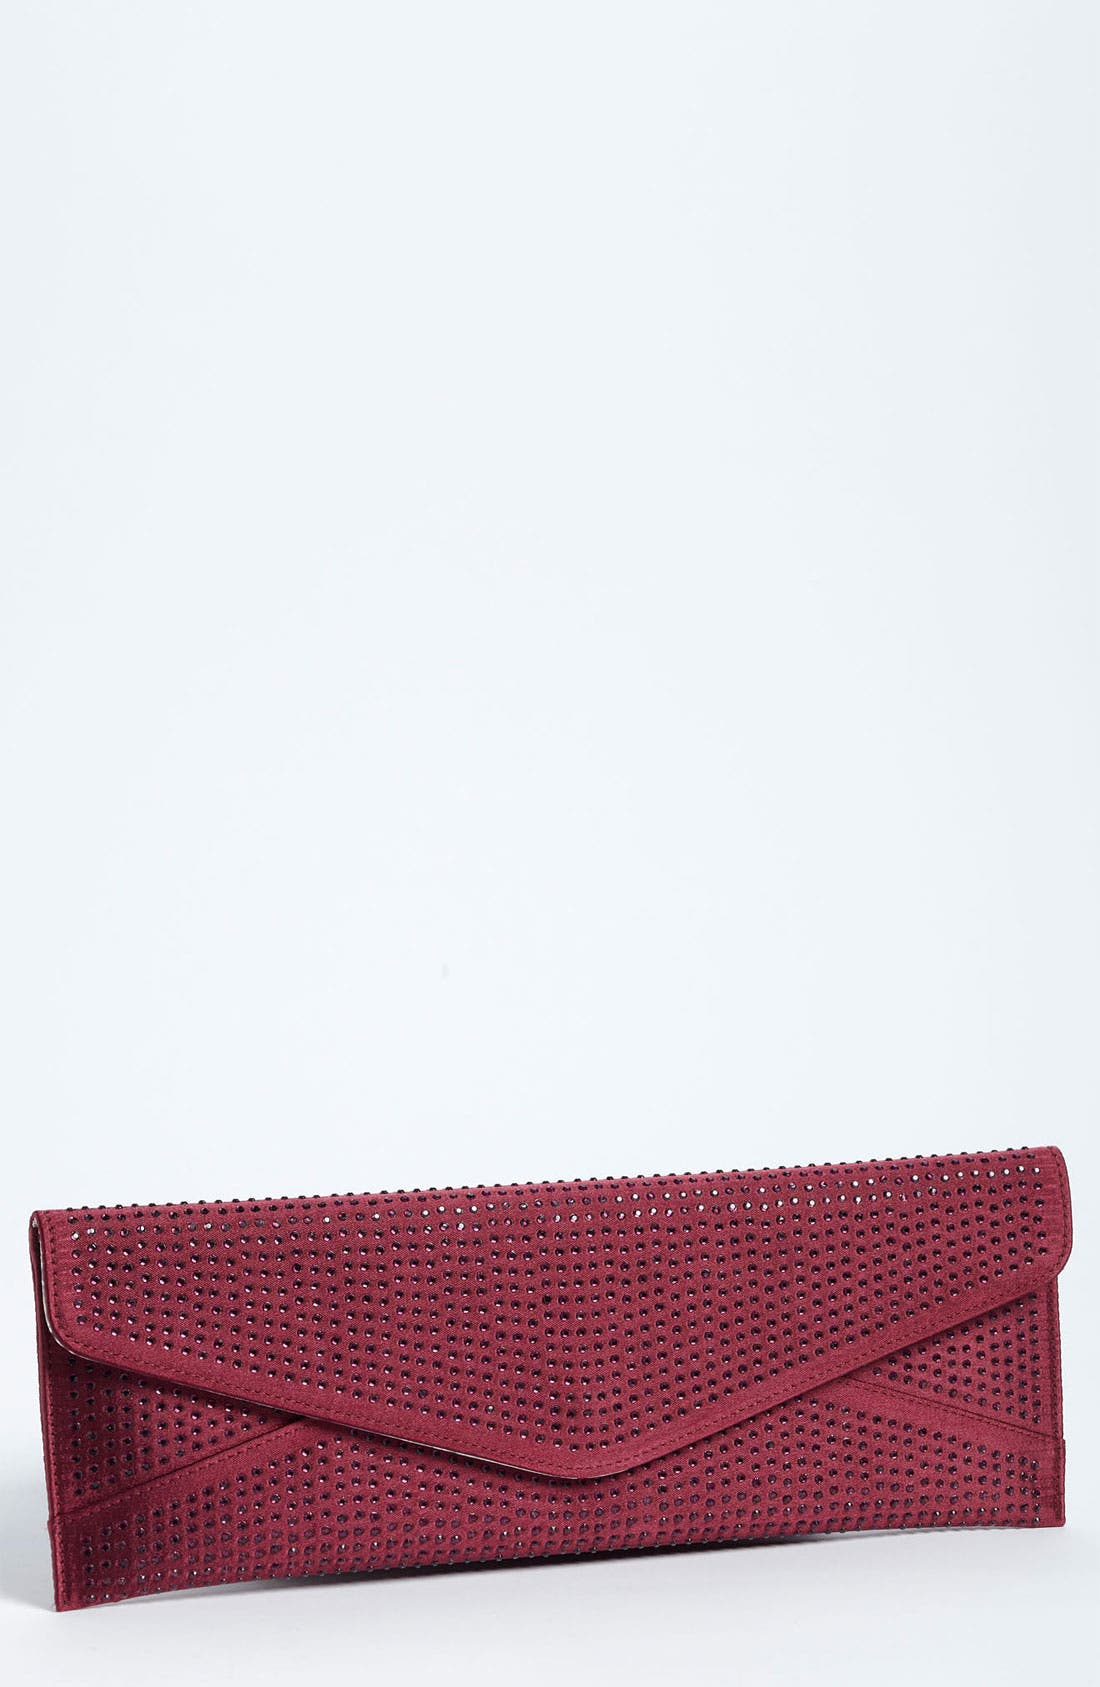 Alternate Image 1 Selected - Ted Baker London 'TB Script' Sequin Clutch